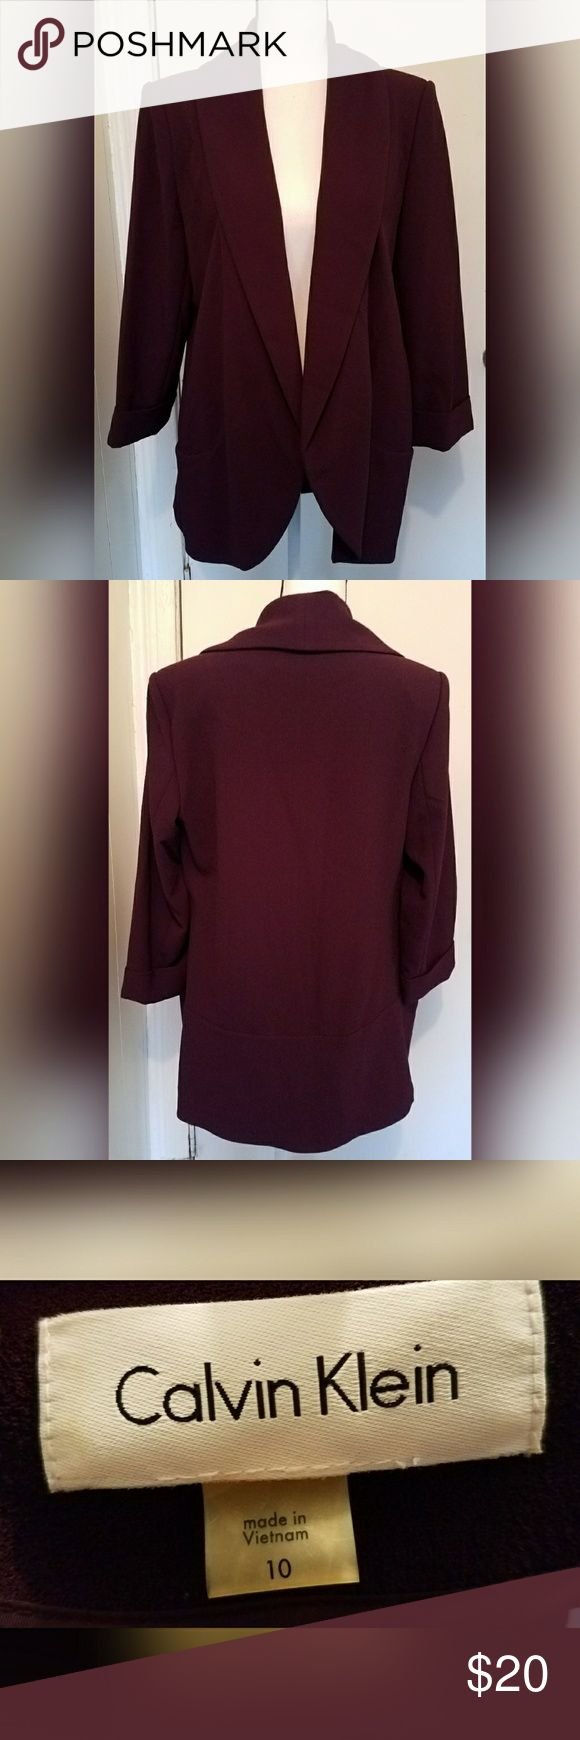 Calvin Klein Purple Blazer Open Front Size 10 Calvin Klein purple blazer.  Women's size 10. True to size.  In excellent condition. No flaws noted.  From a pet/smoke free home.  Machine washable. Calvin Klein Jackets & Coats Blazers